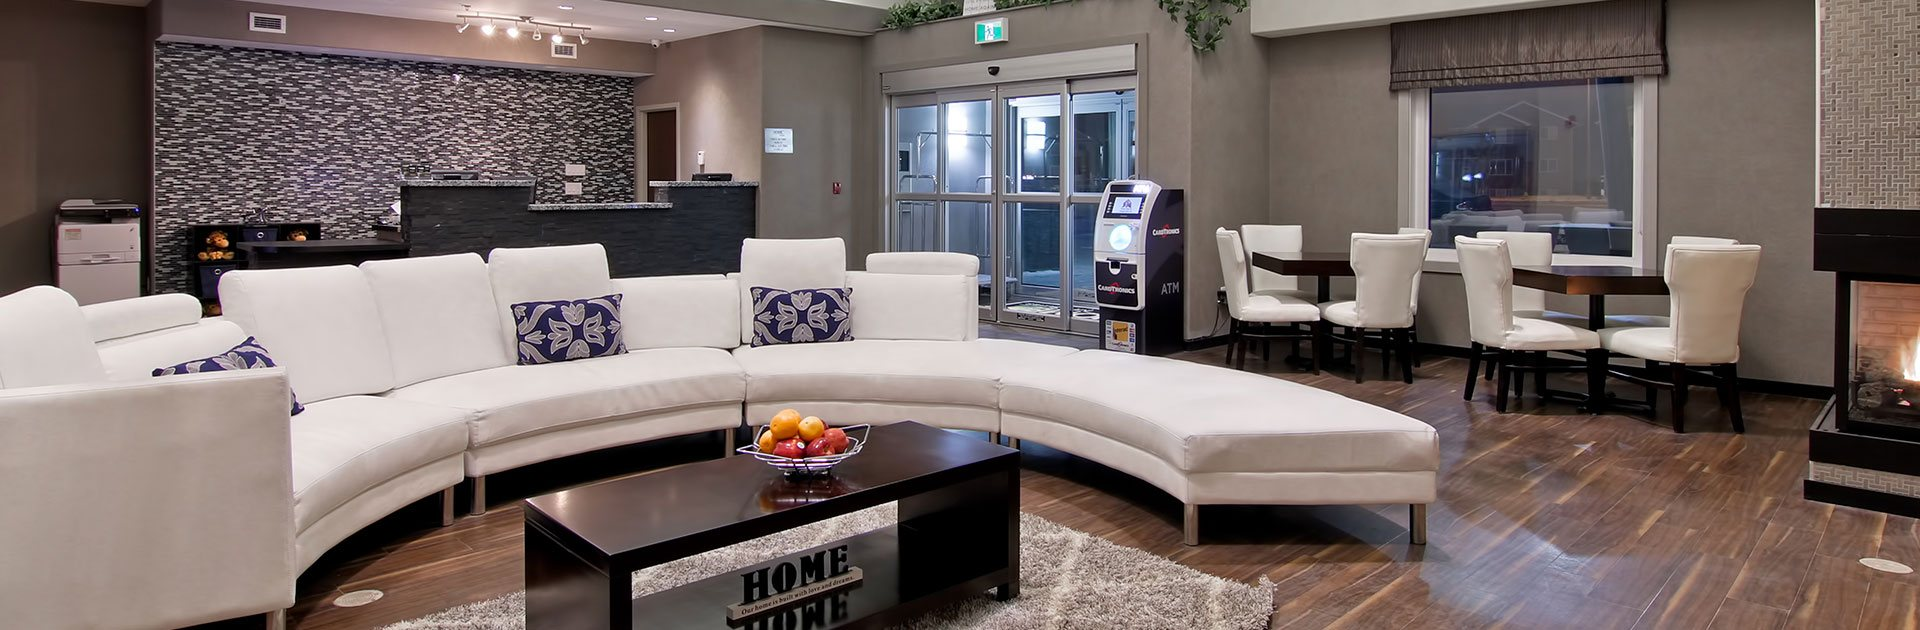 The lobby of the d3h Home Inn & Suites Regina Airport features a bright white curved sectional sofa with decorative purple accent pillows contrasted against the black and white pattern accent wall and charcoal gray stone check in counter in the background.